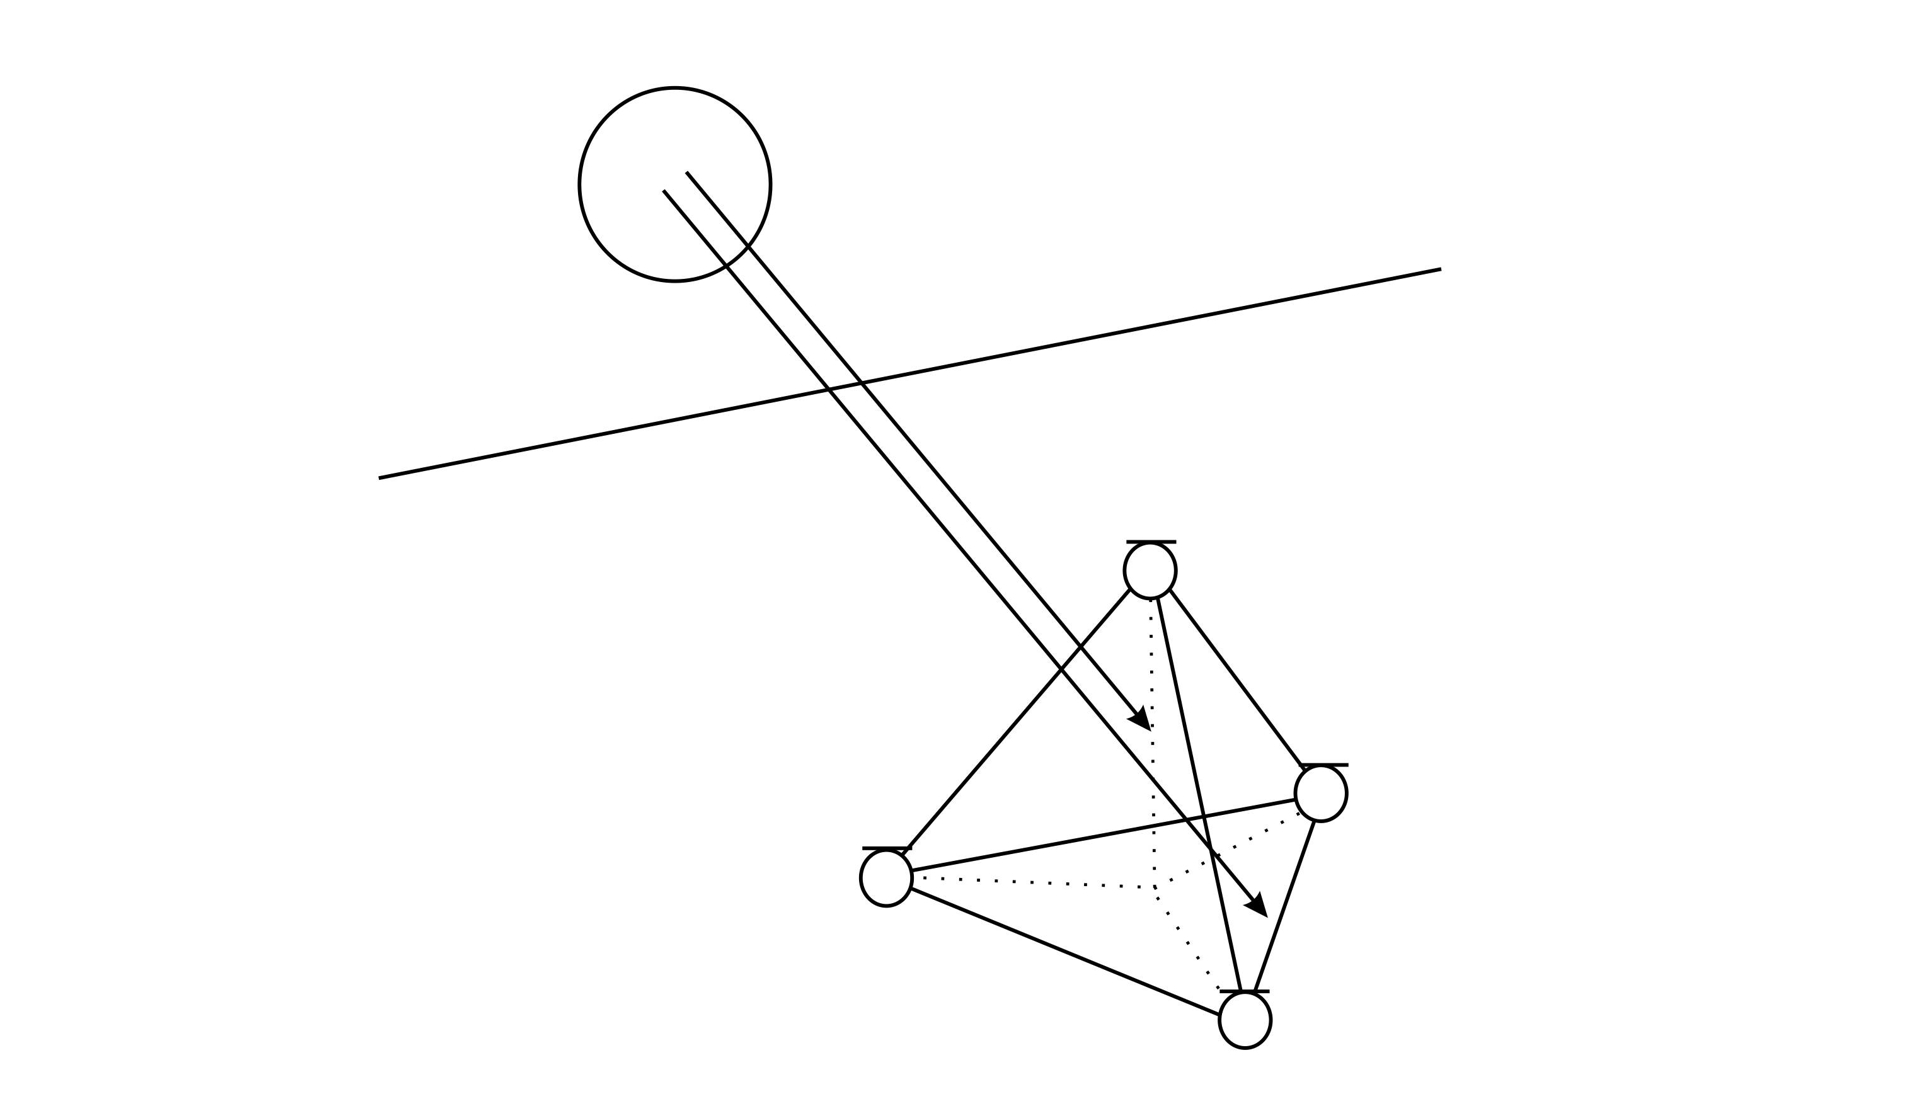 angle-of-arrival-calculation